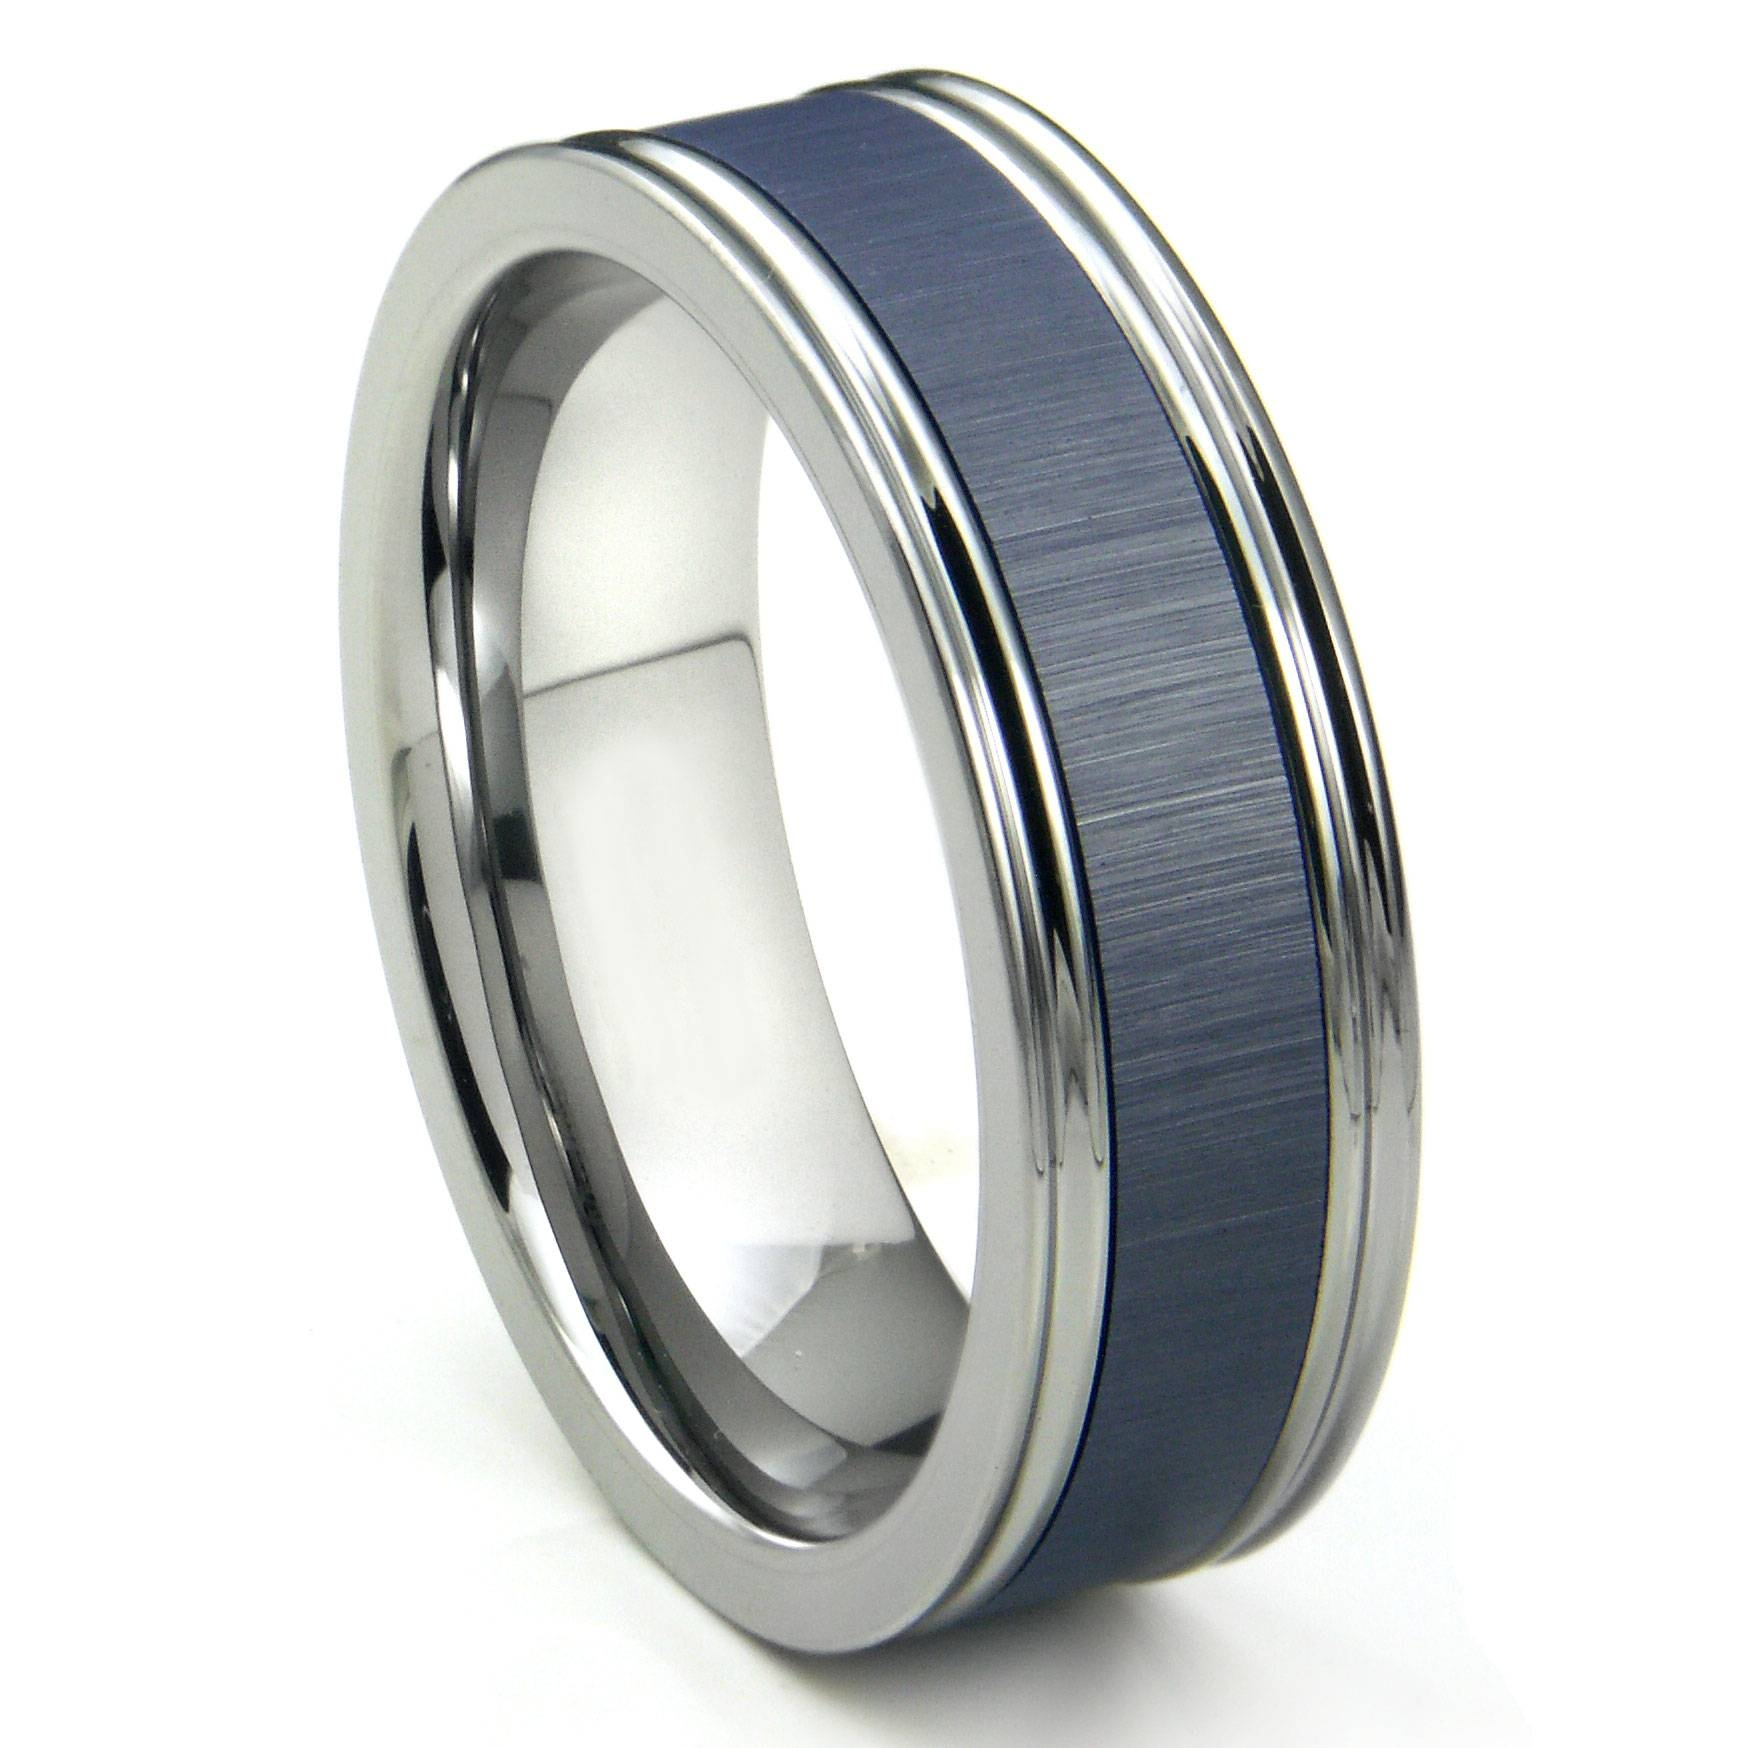 Mens Tungsten Rings & Wedding Bands – Titanium Kay In Tungsten Wedding Bands (Gallery 171 of 339)